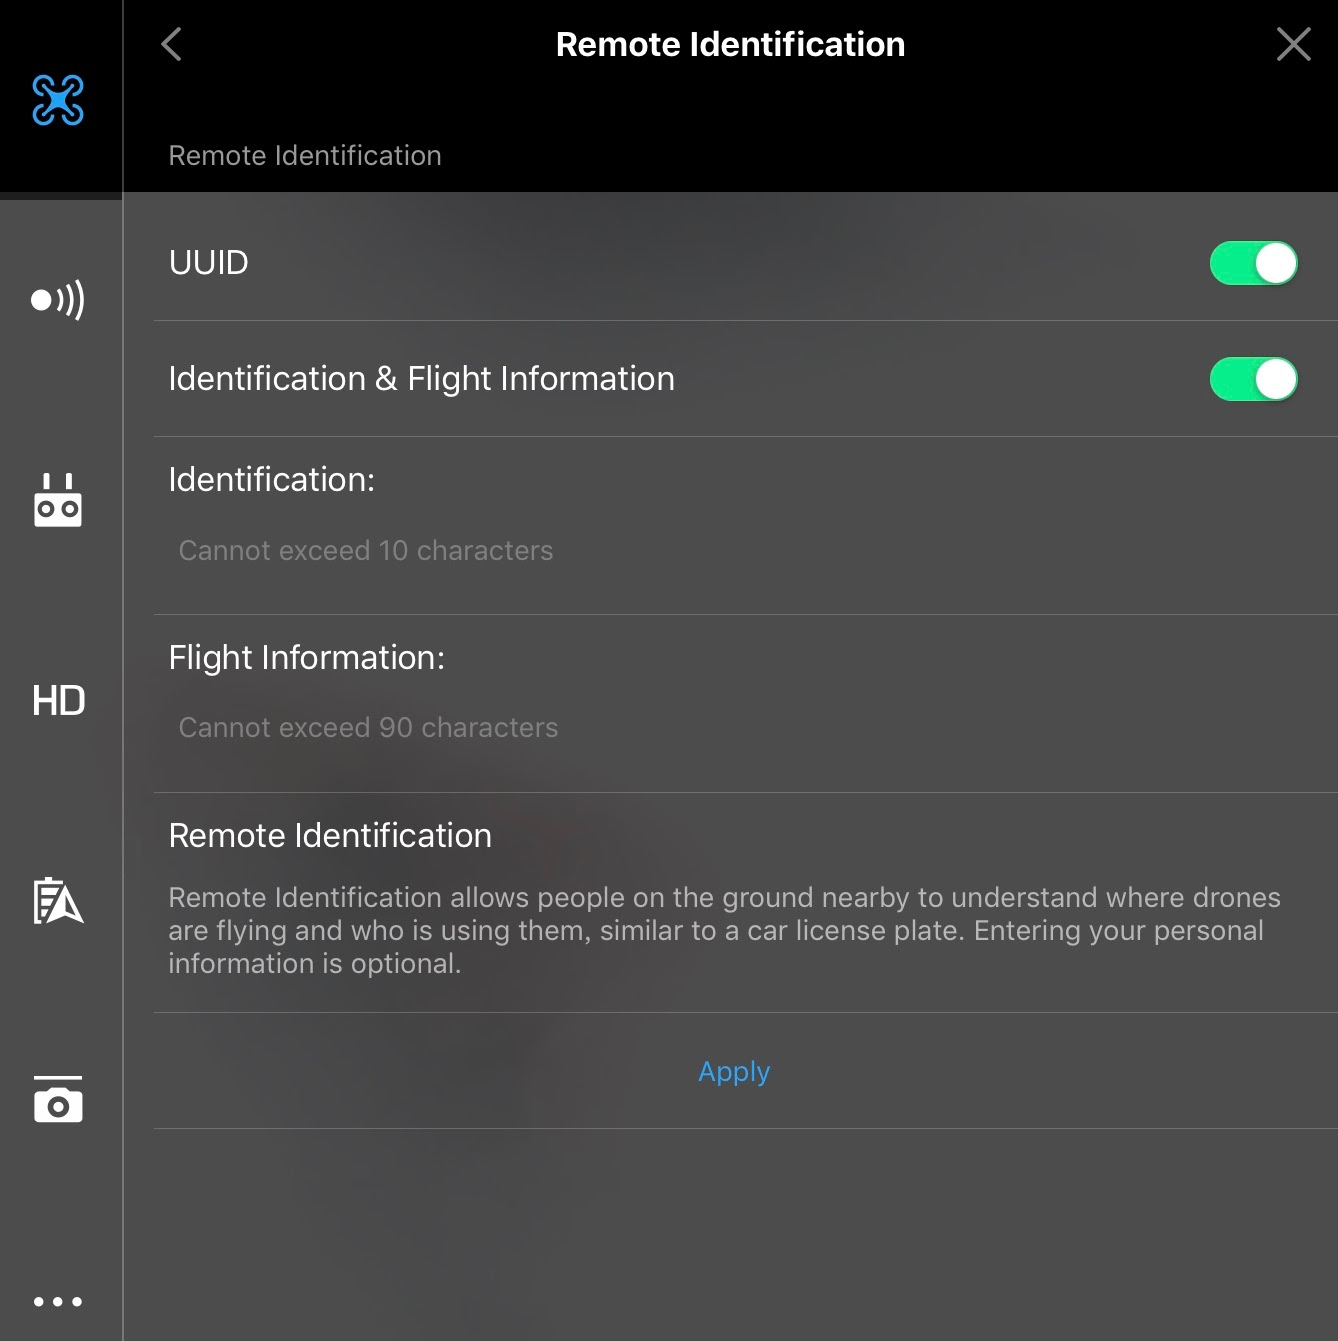 DJI Introduces Voluntary Flight Identification Options For Drone